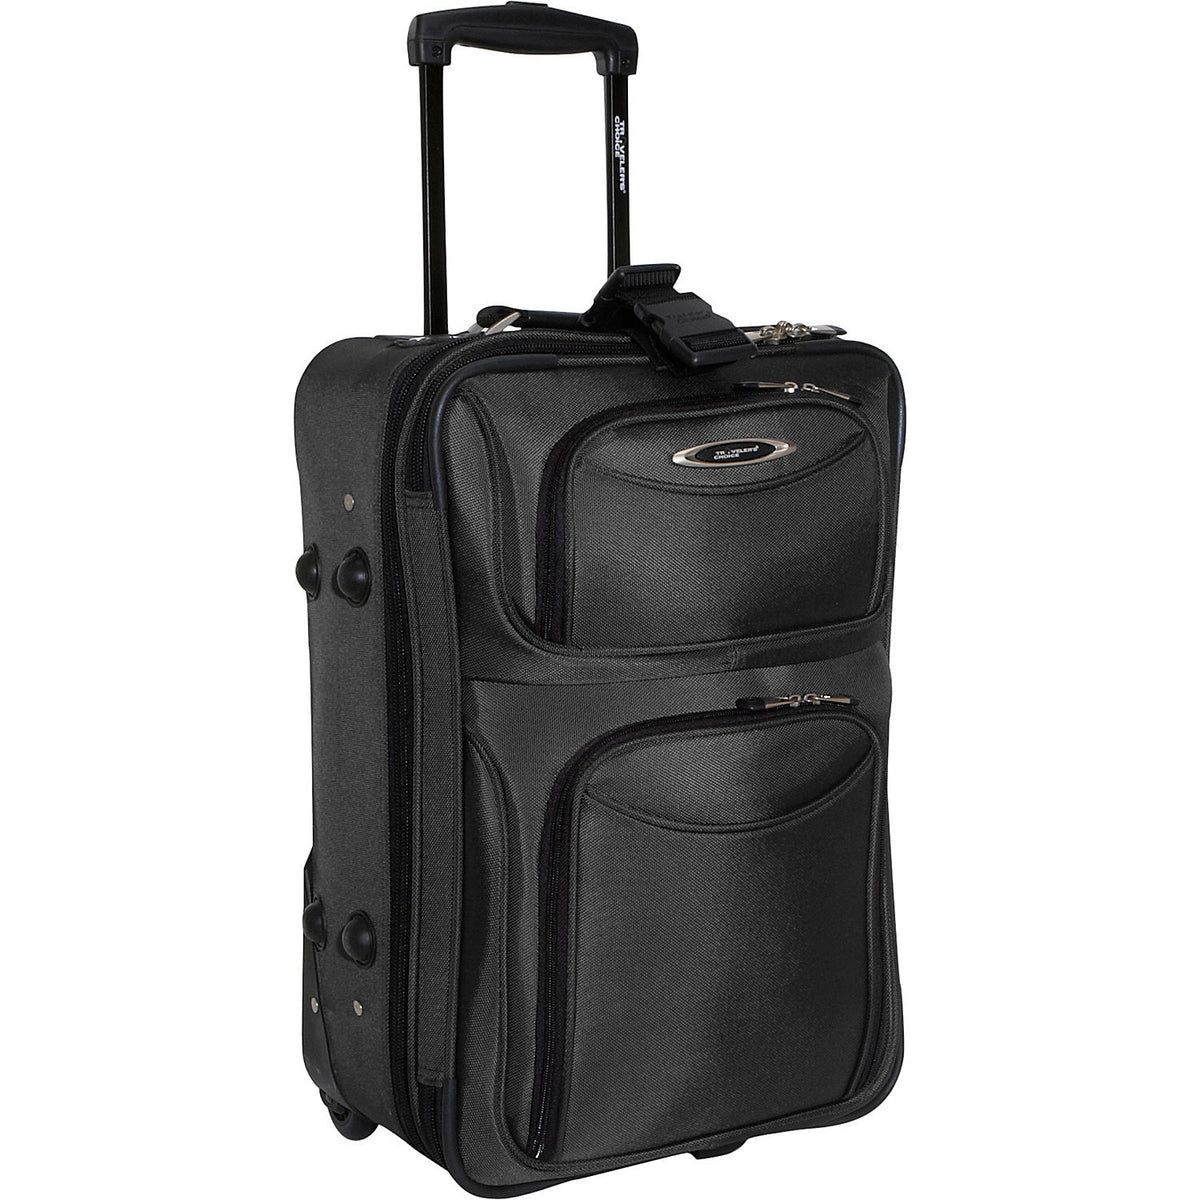 Traveler's Choice El Dorado 21in Expandable Carry On Upright